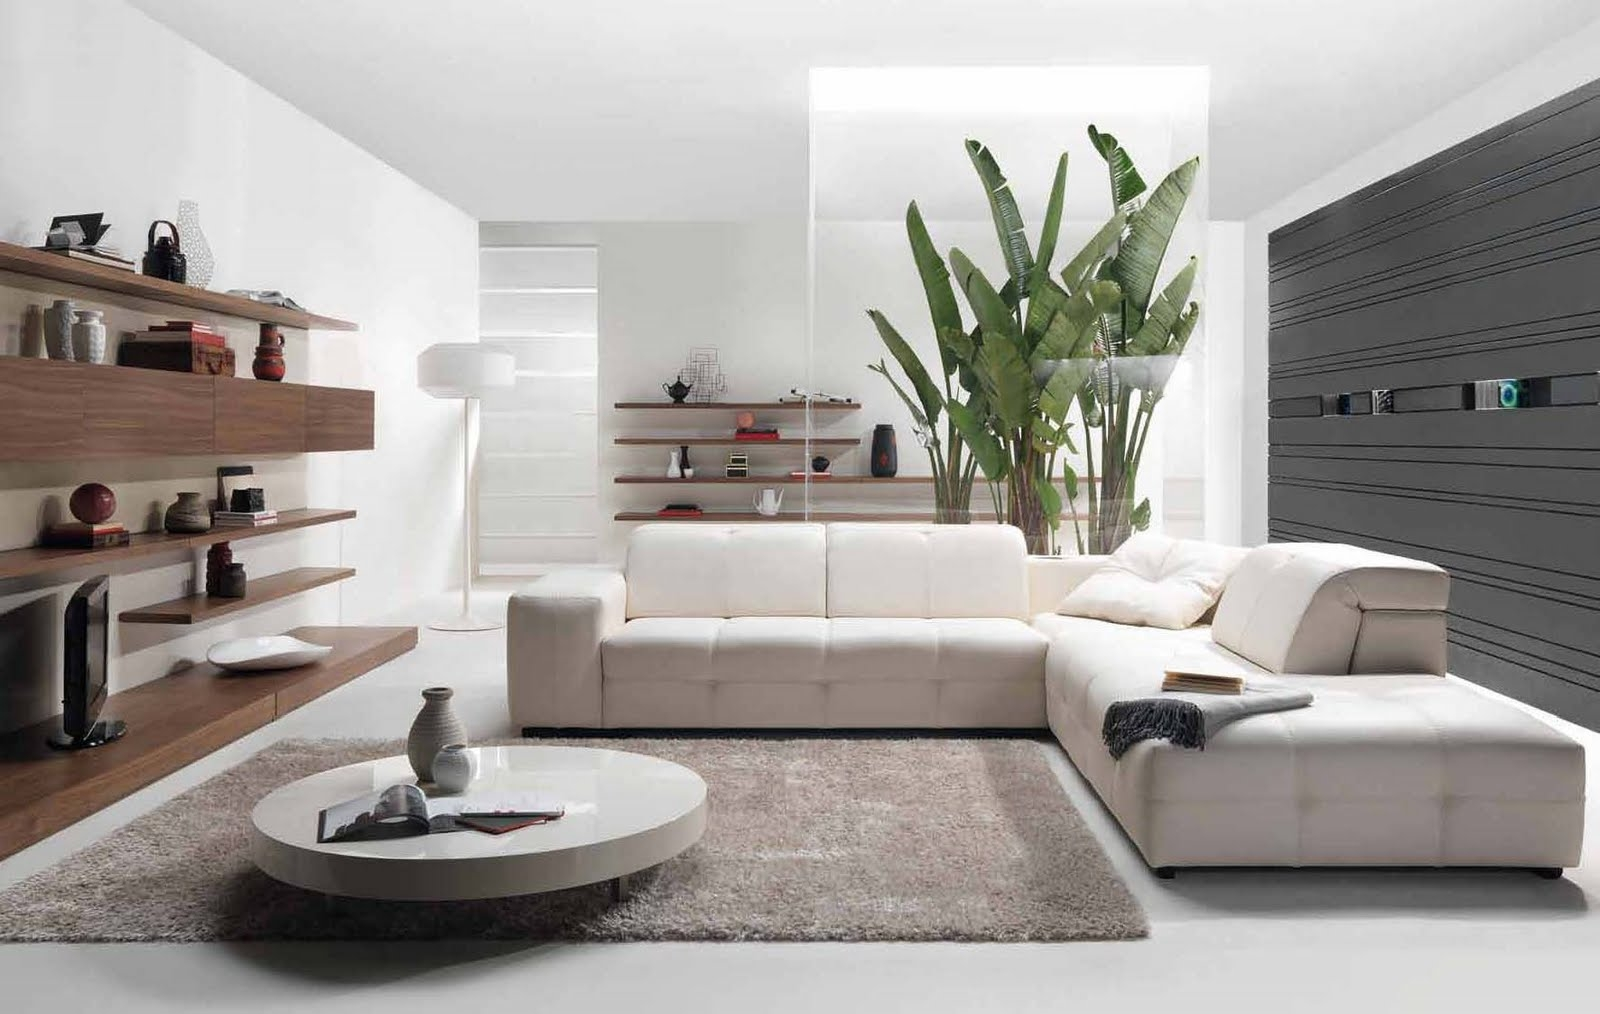 How to make your home look beautiful by spending less  : healthy environment from www.interiorhousedesign.net size 1600 x 1014 jpeg 466kB